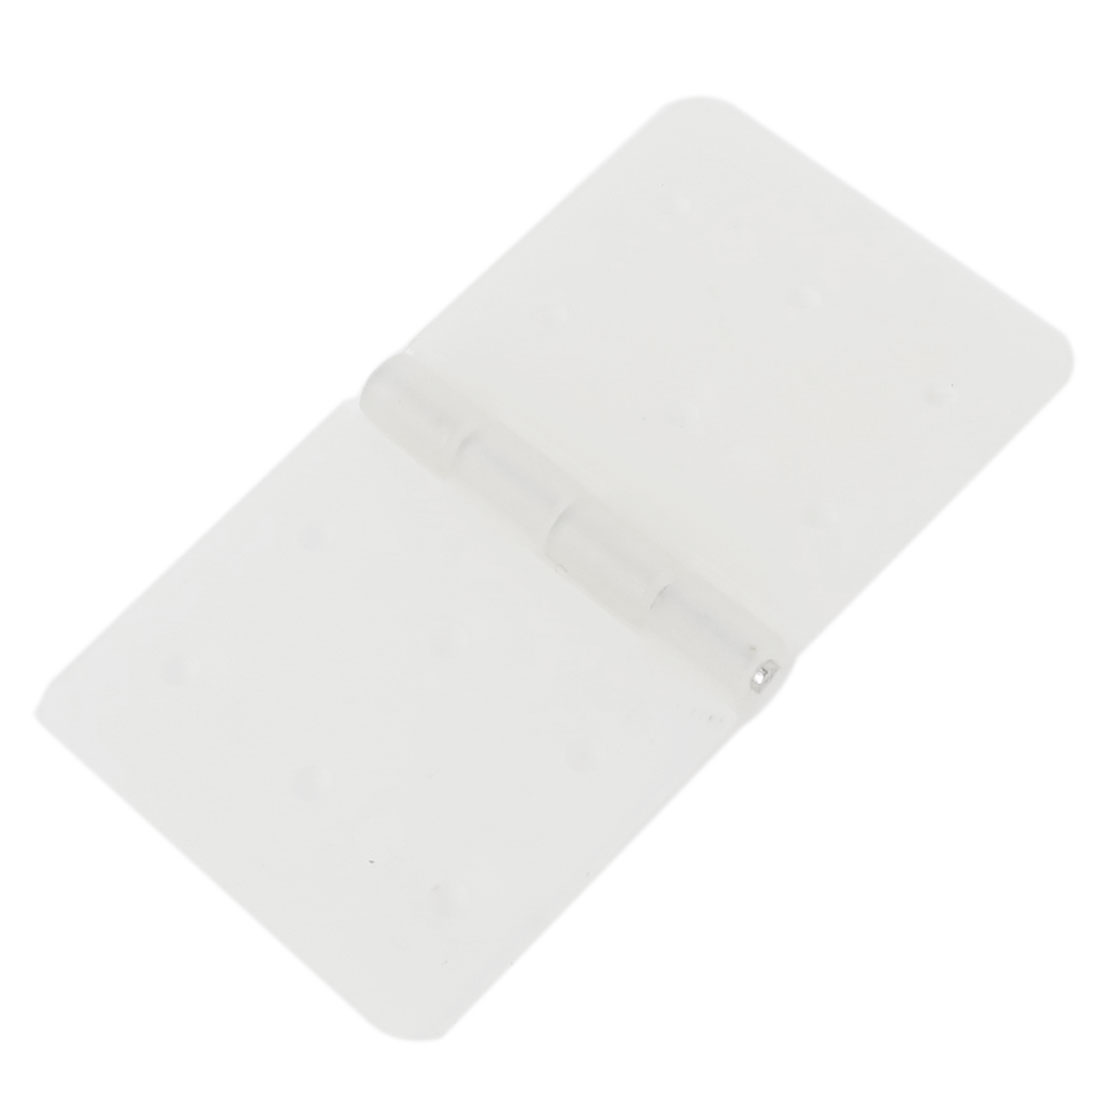 Folding White Nylon Pinned Hinges Parts 20mm x 36mm for RC Plane